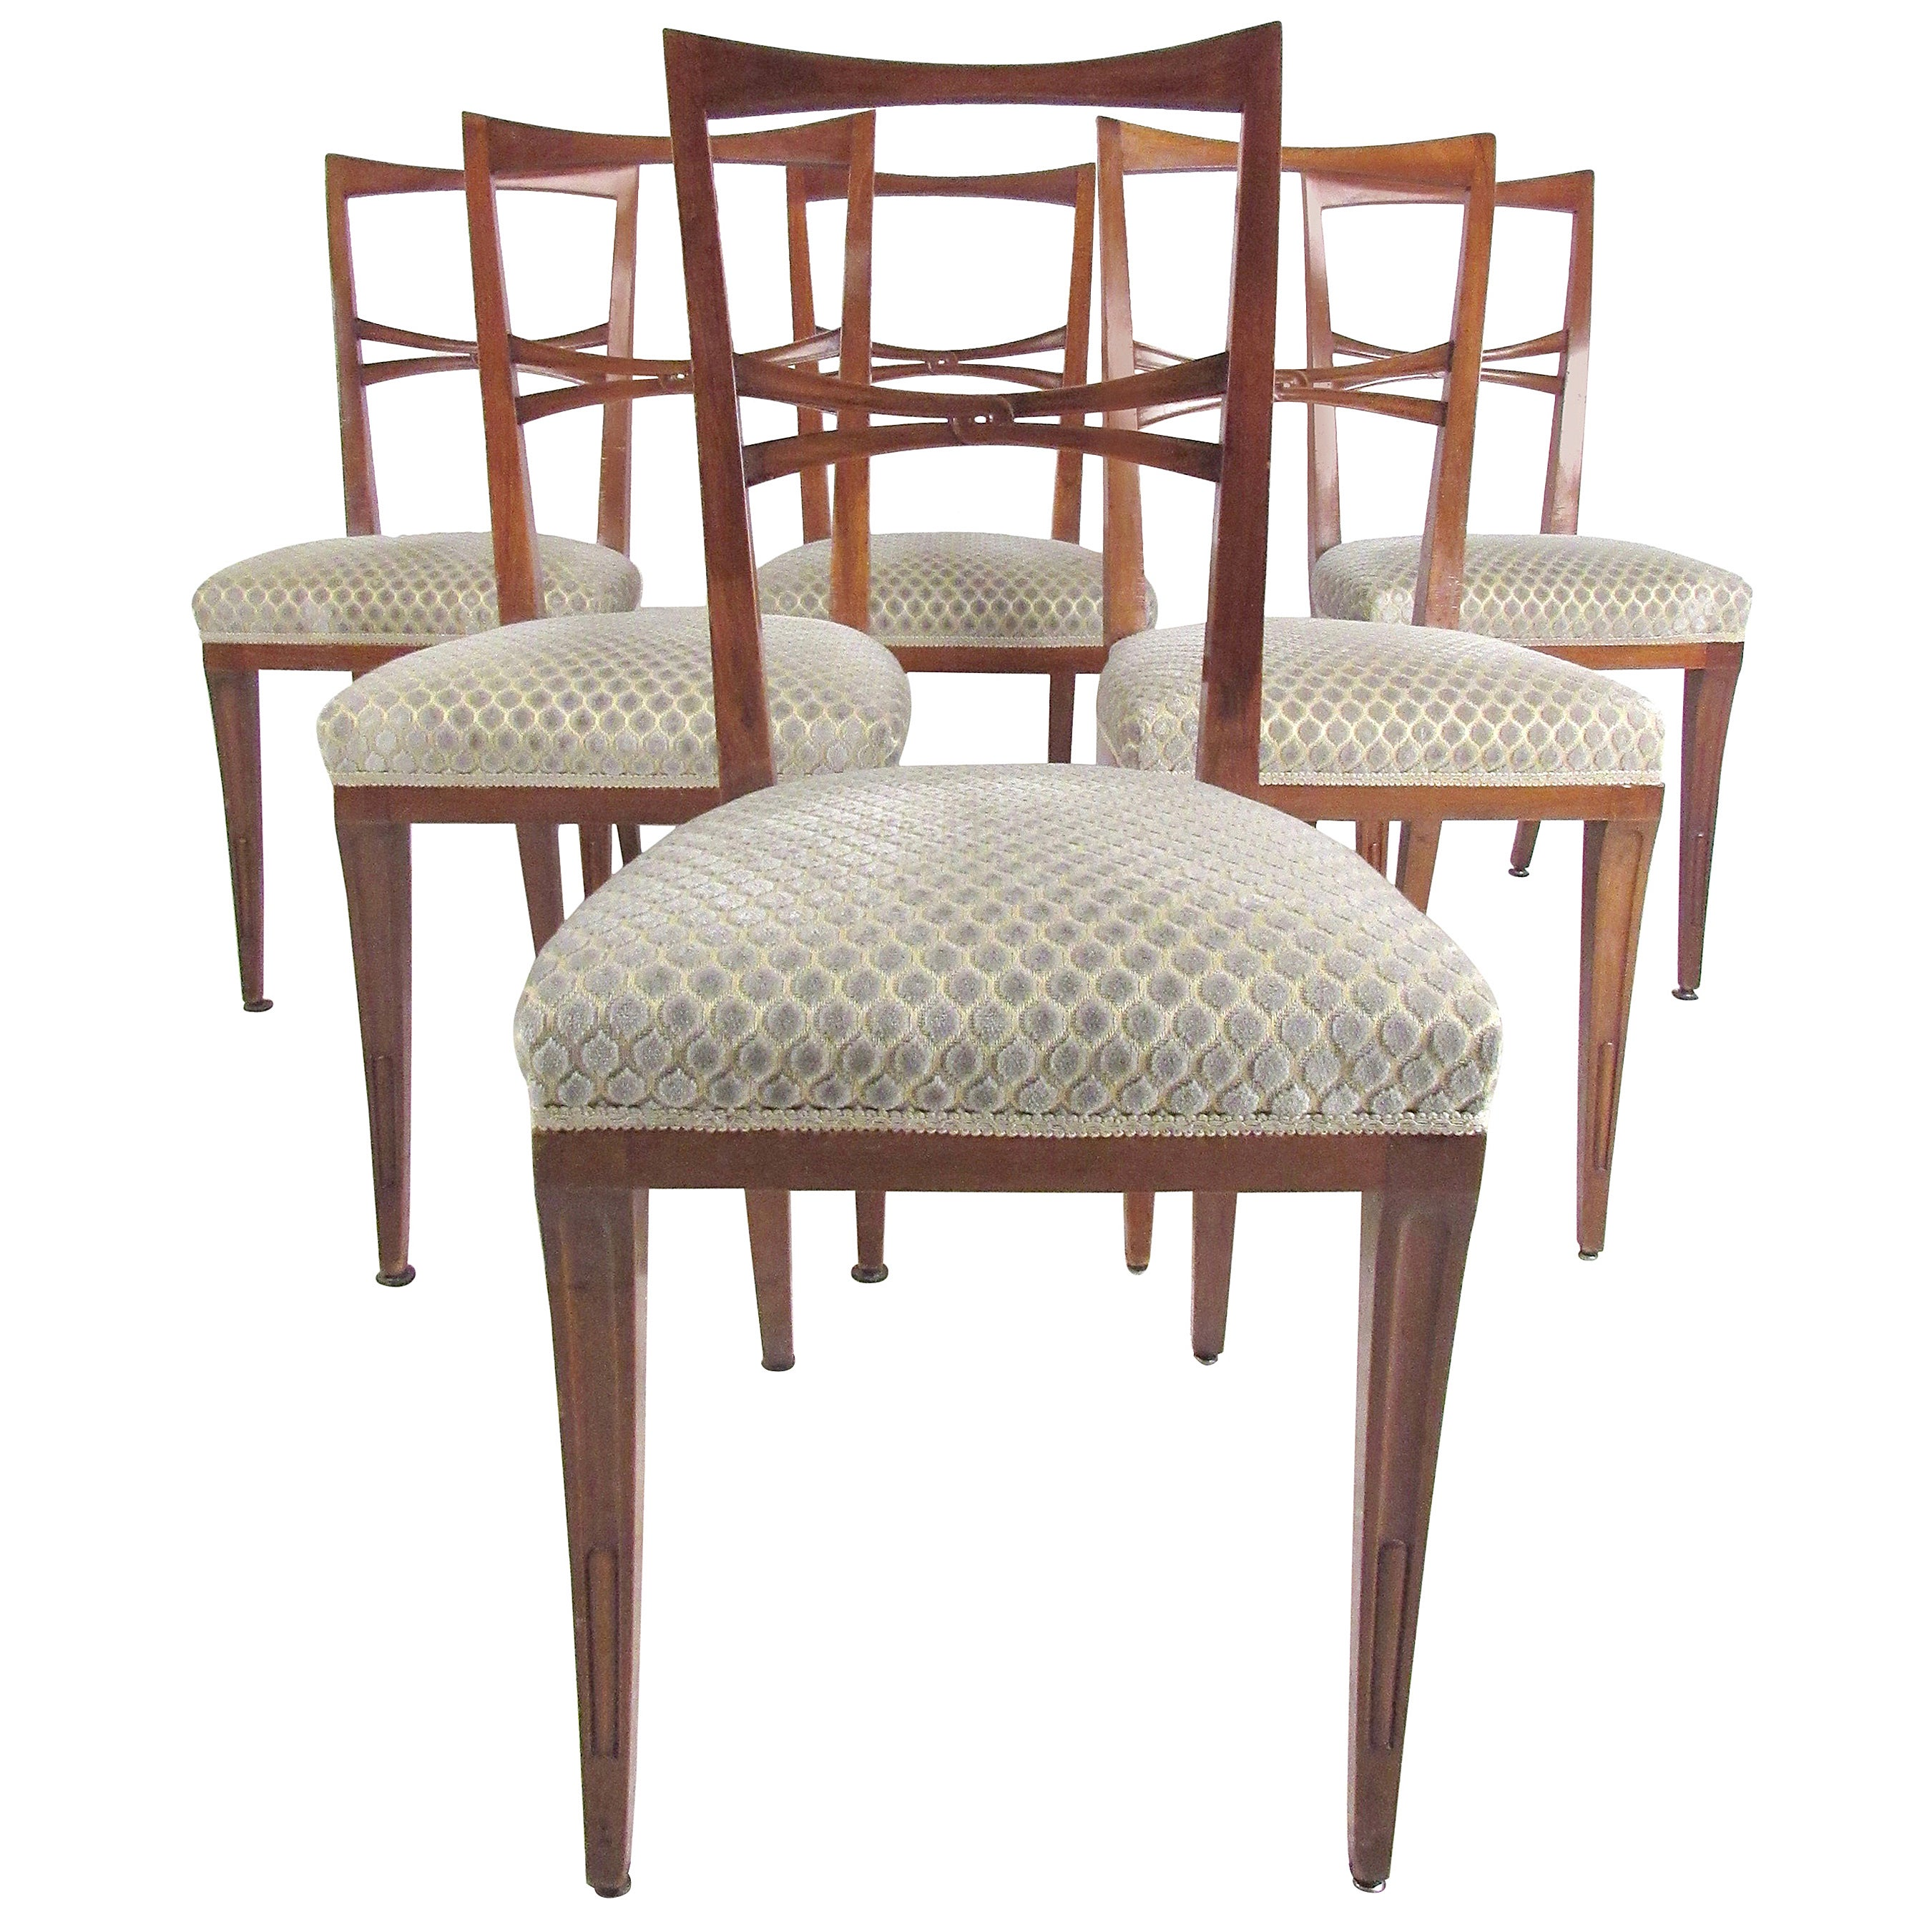 Italian Modern Dining Chairs after Gio Ponti